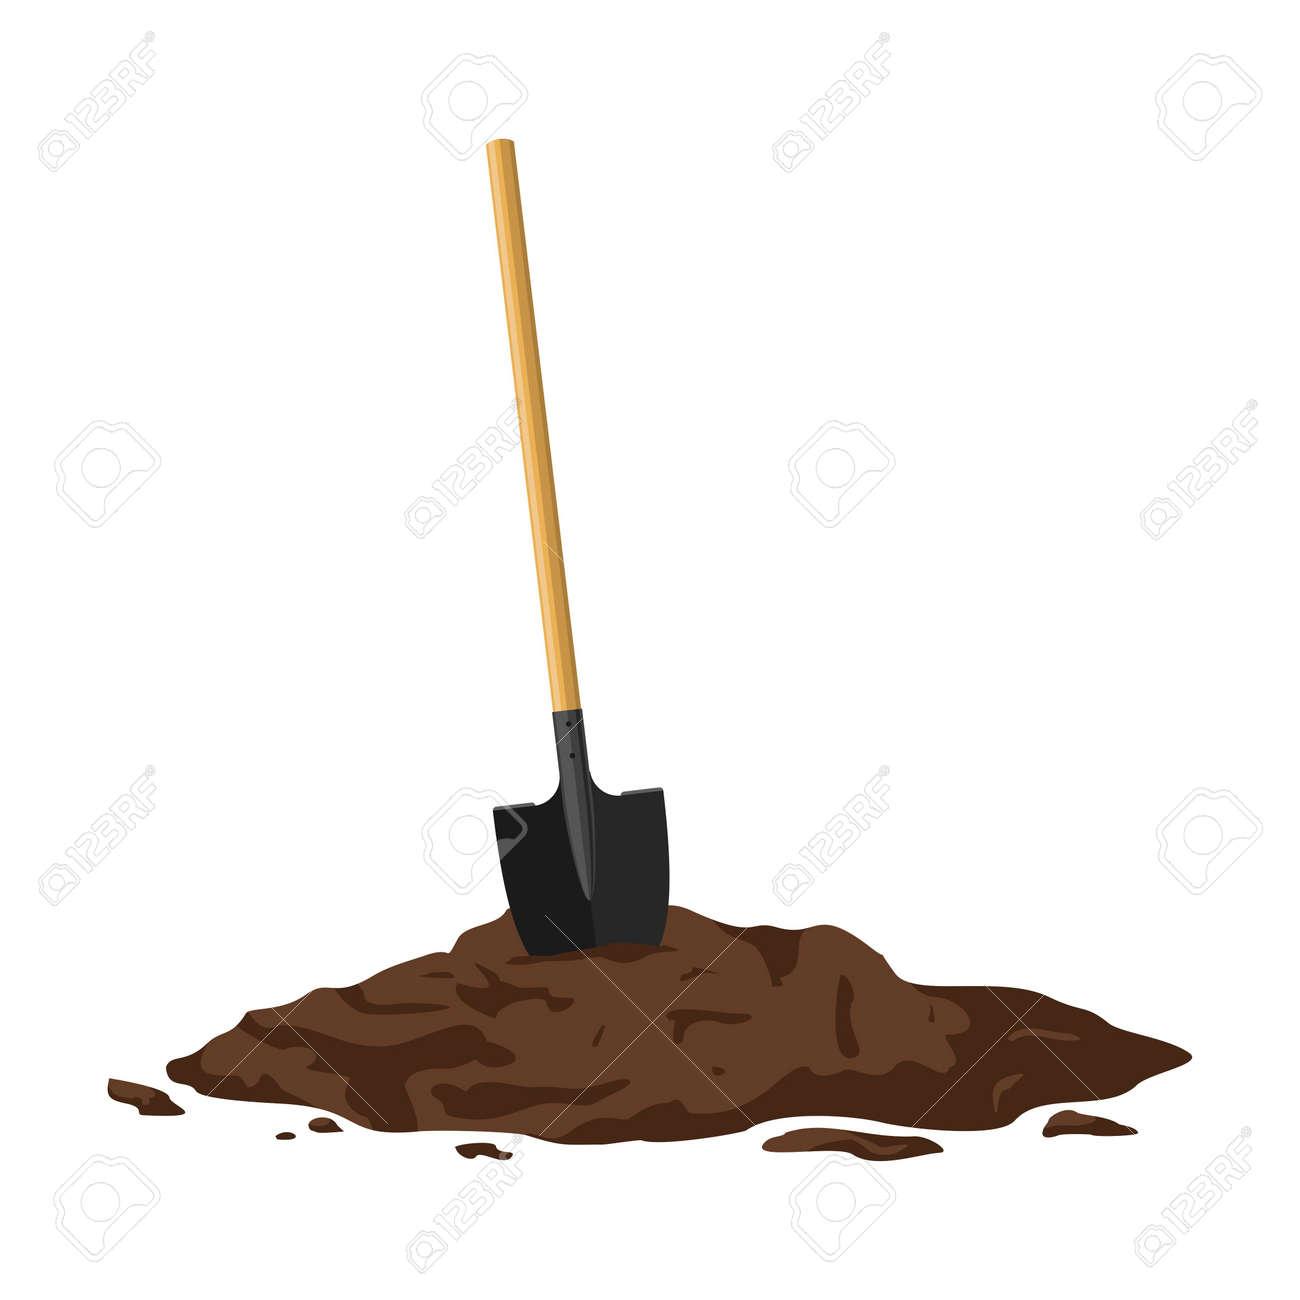 Shovel in a pile of soil isolated on white background. Work tool for outdoor activities, digging, gardening. Construction equipment in heap of dirt. Vector illustration - 163564322